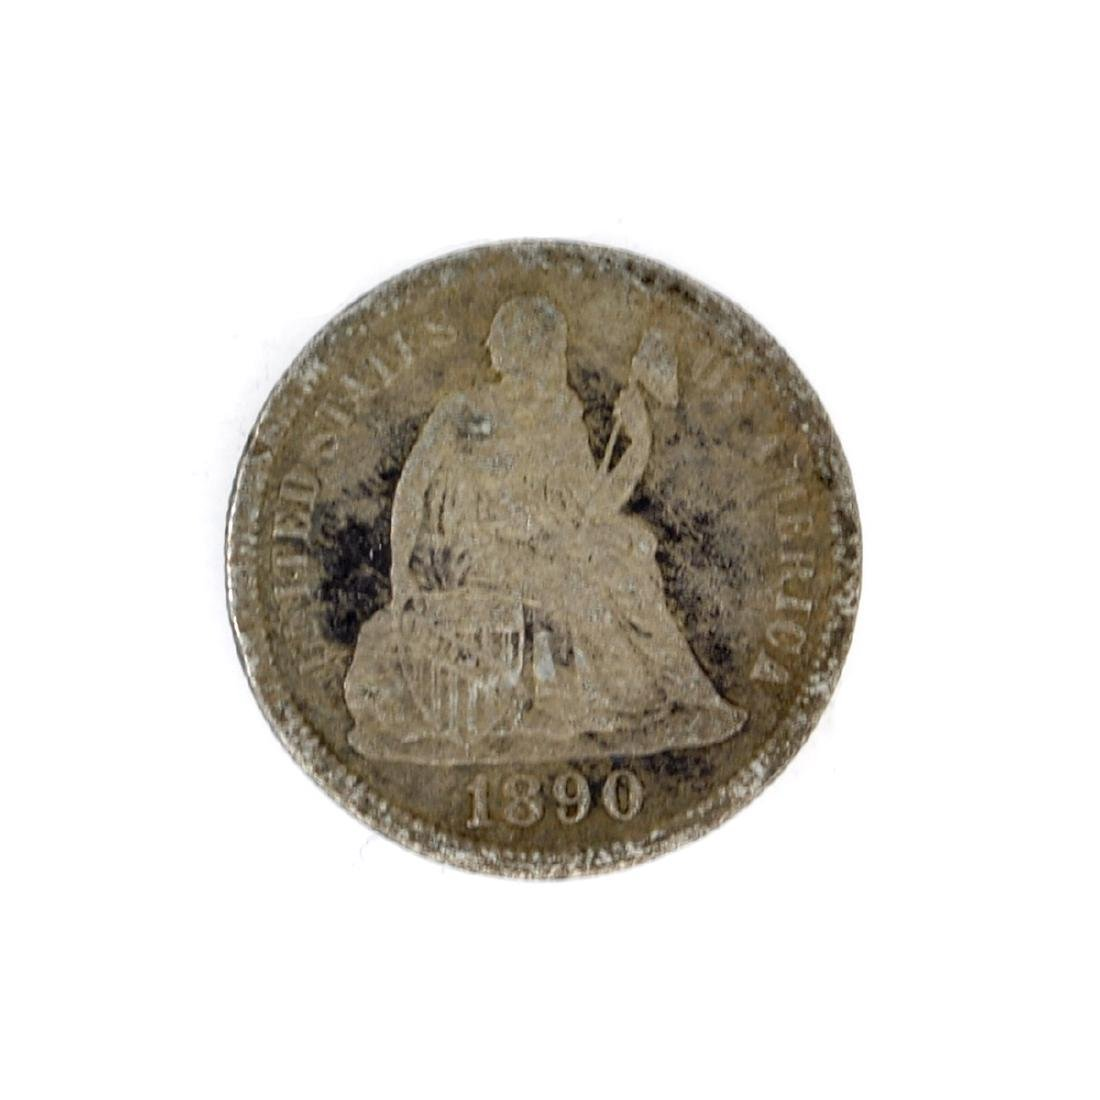 1890 Liberty Seated Dime Coin